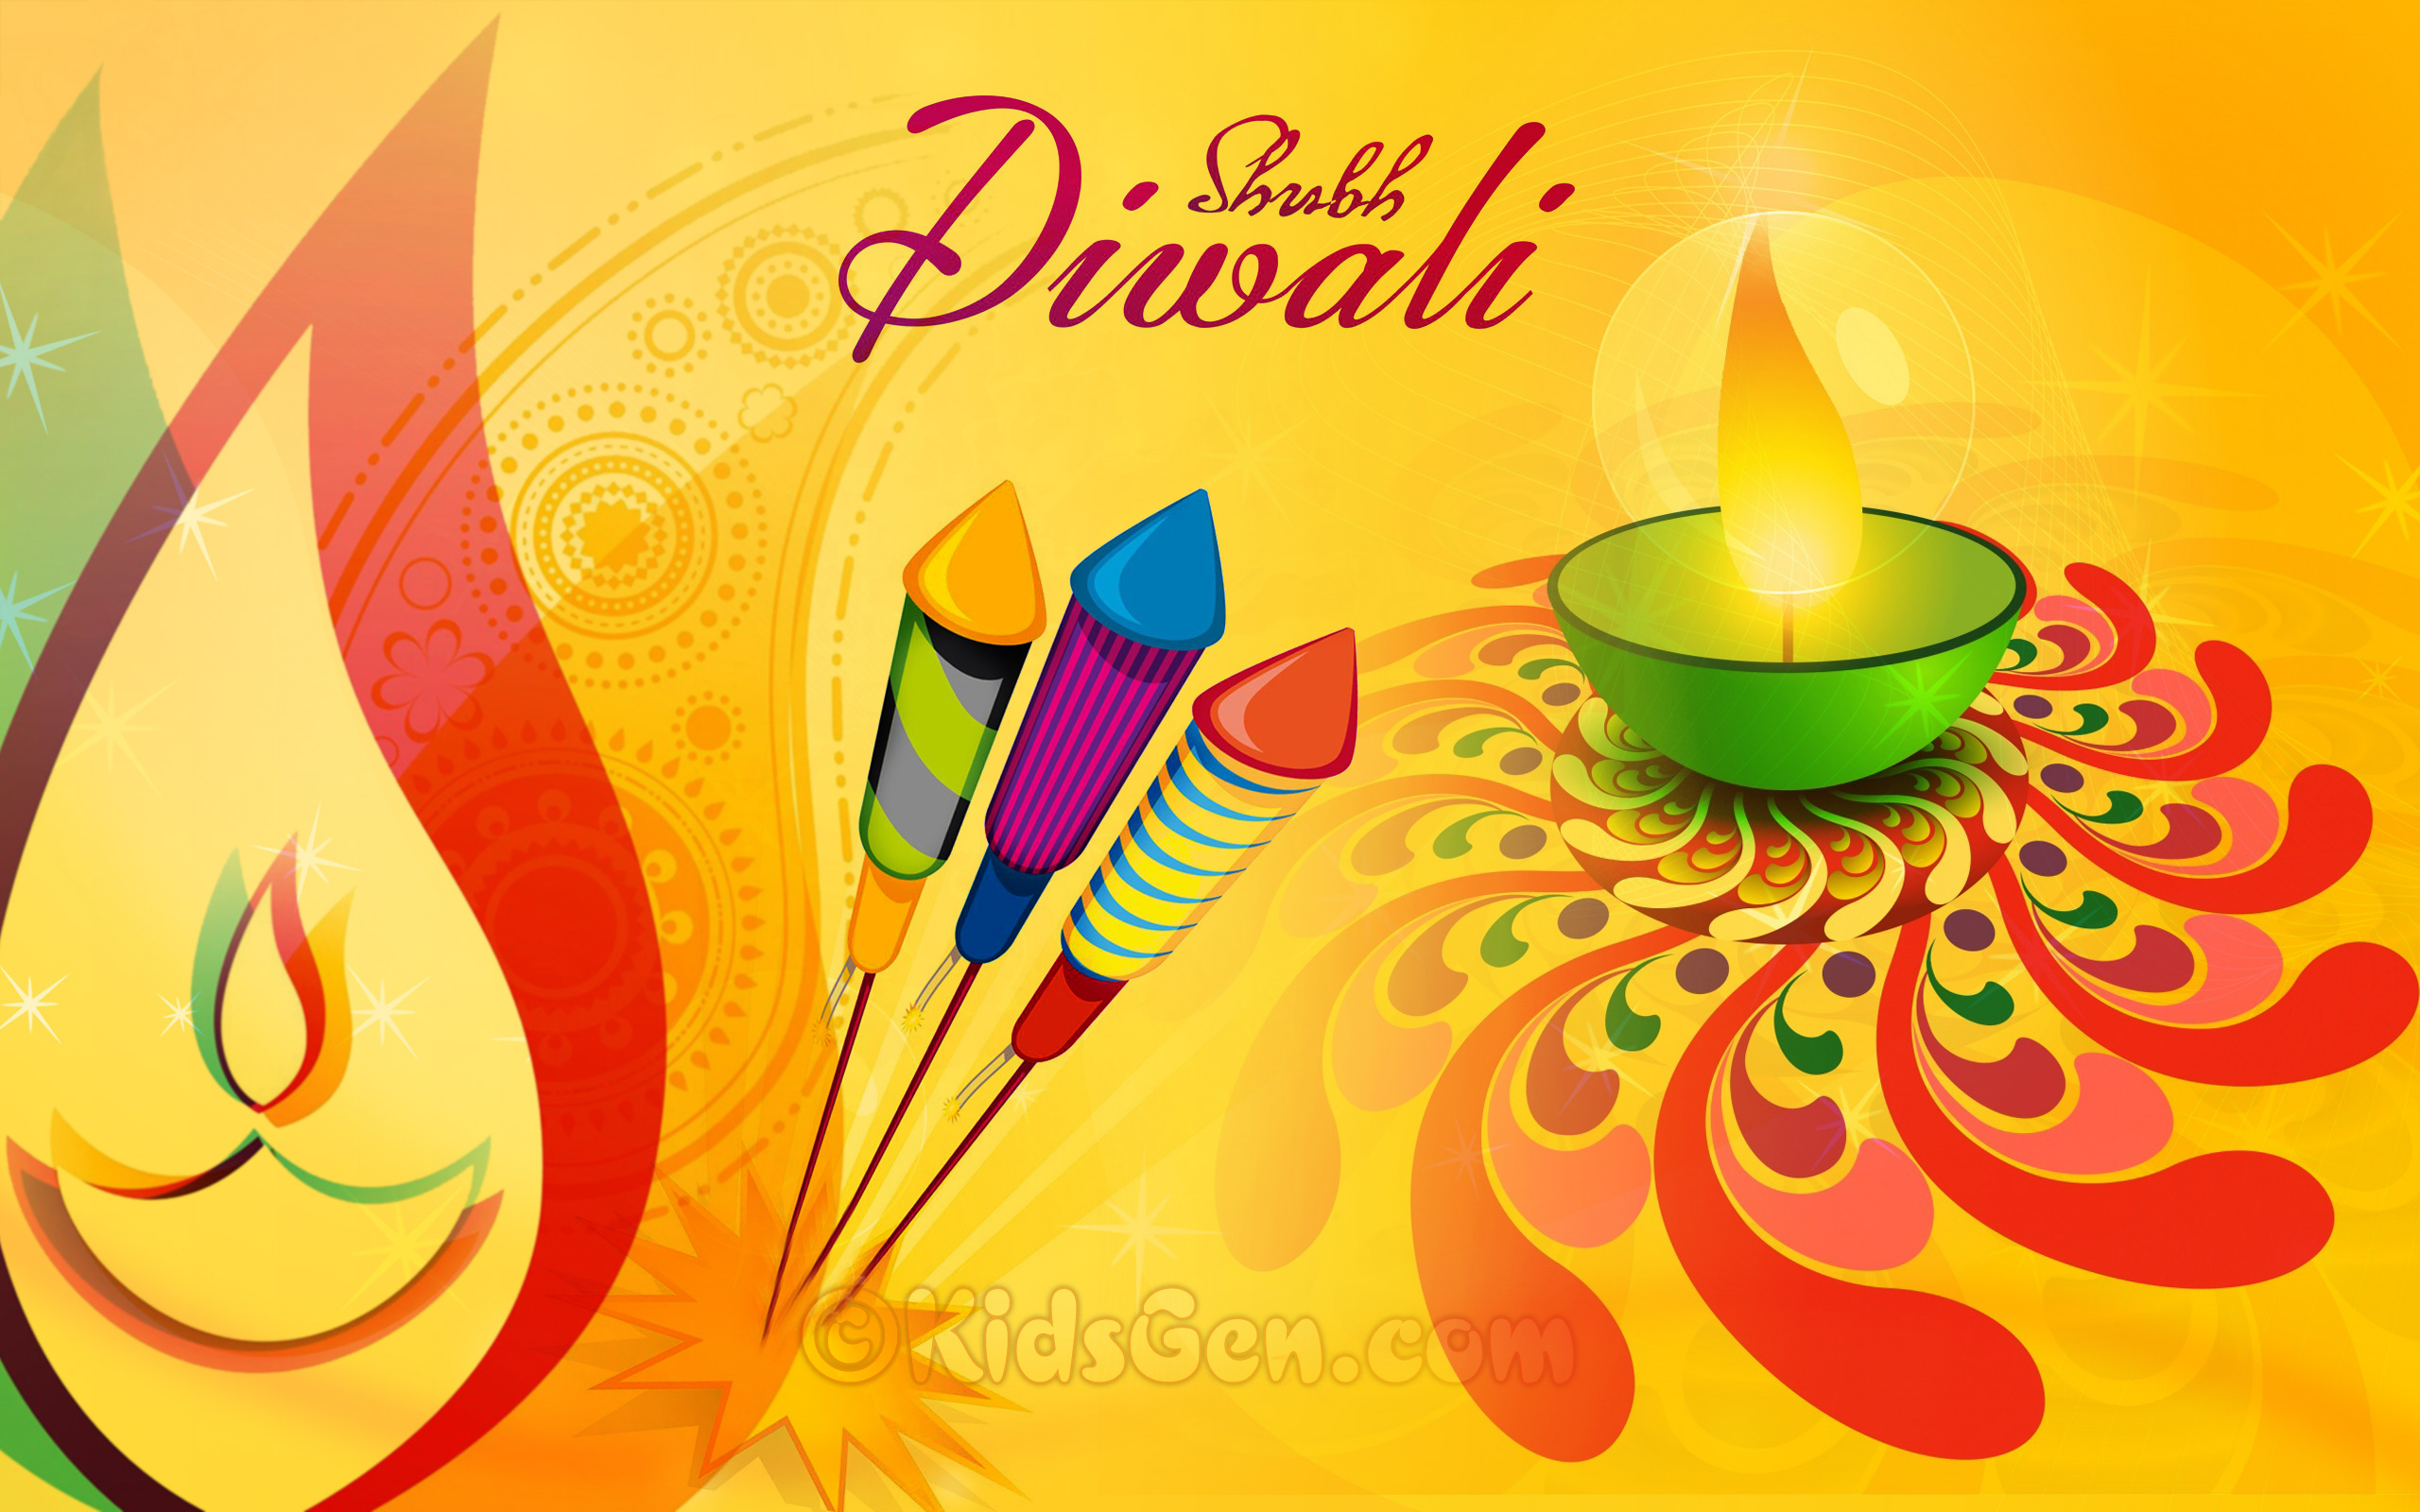 high definition wallpapers for diwali